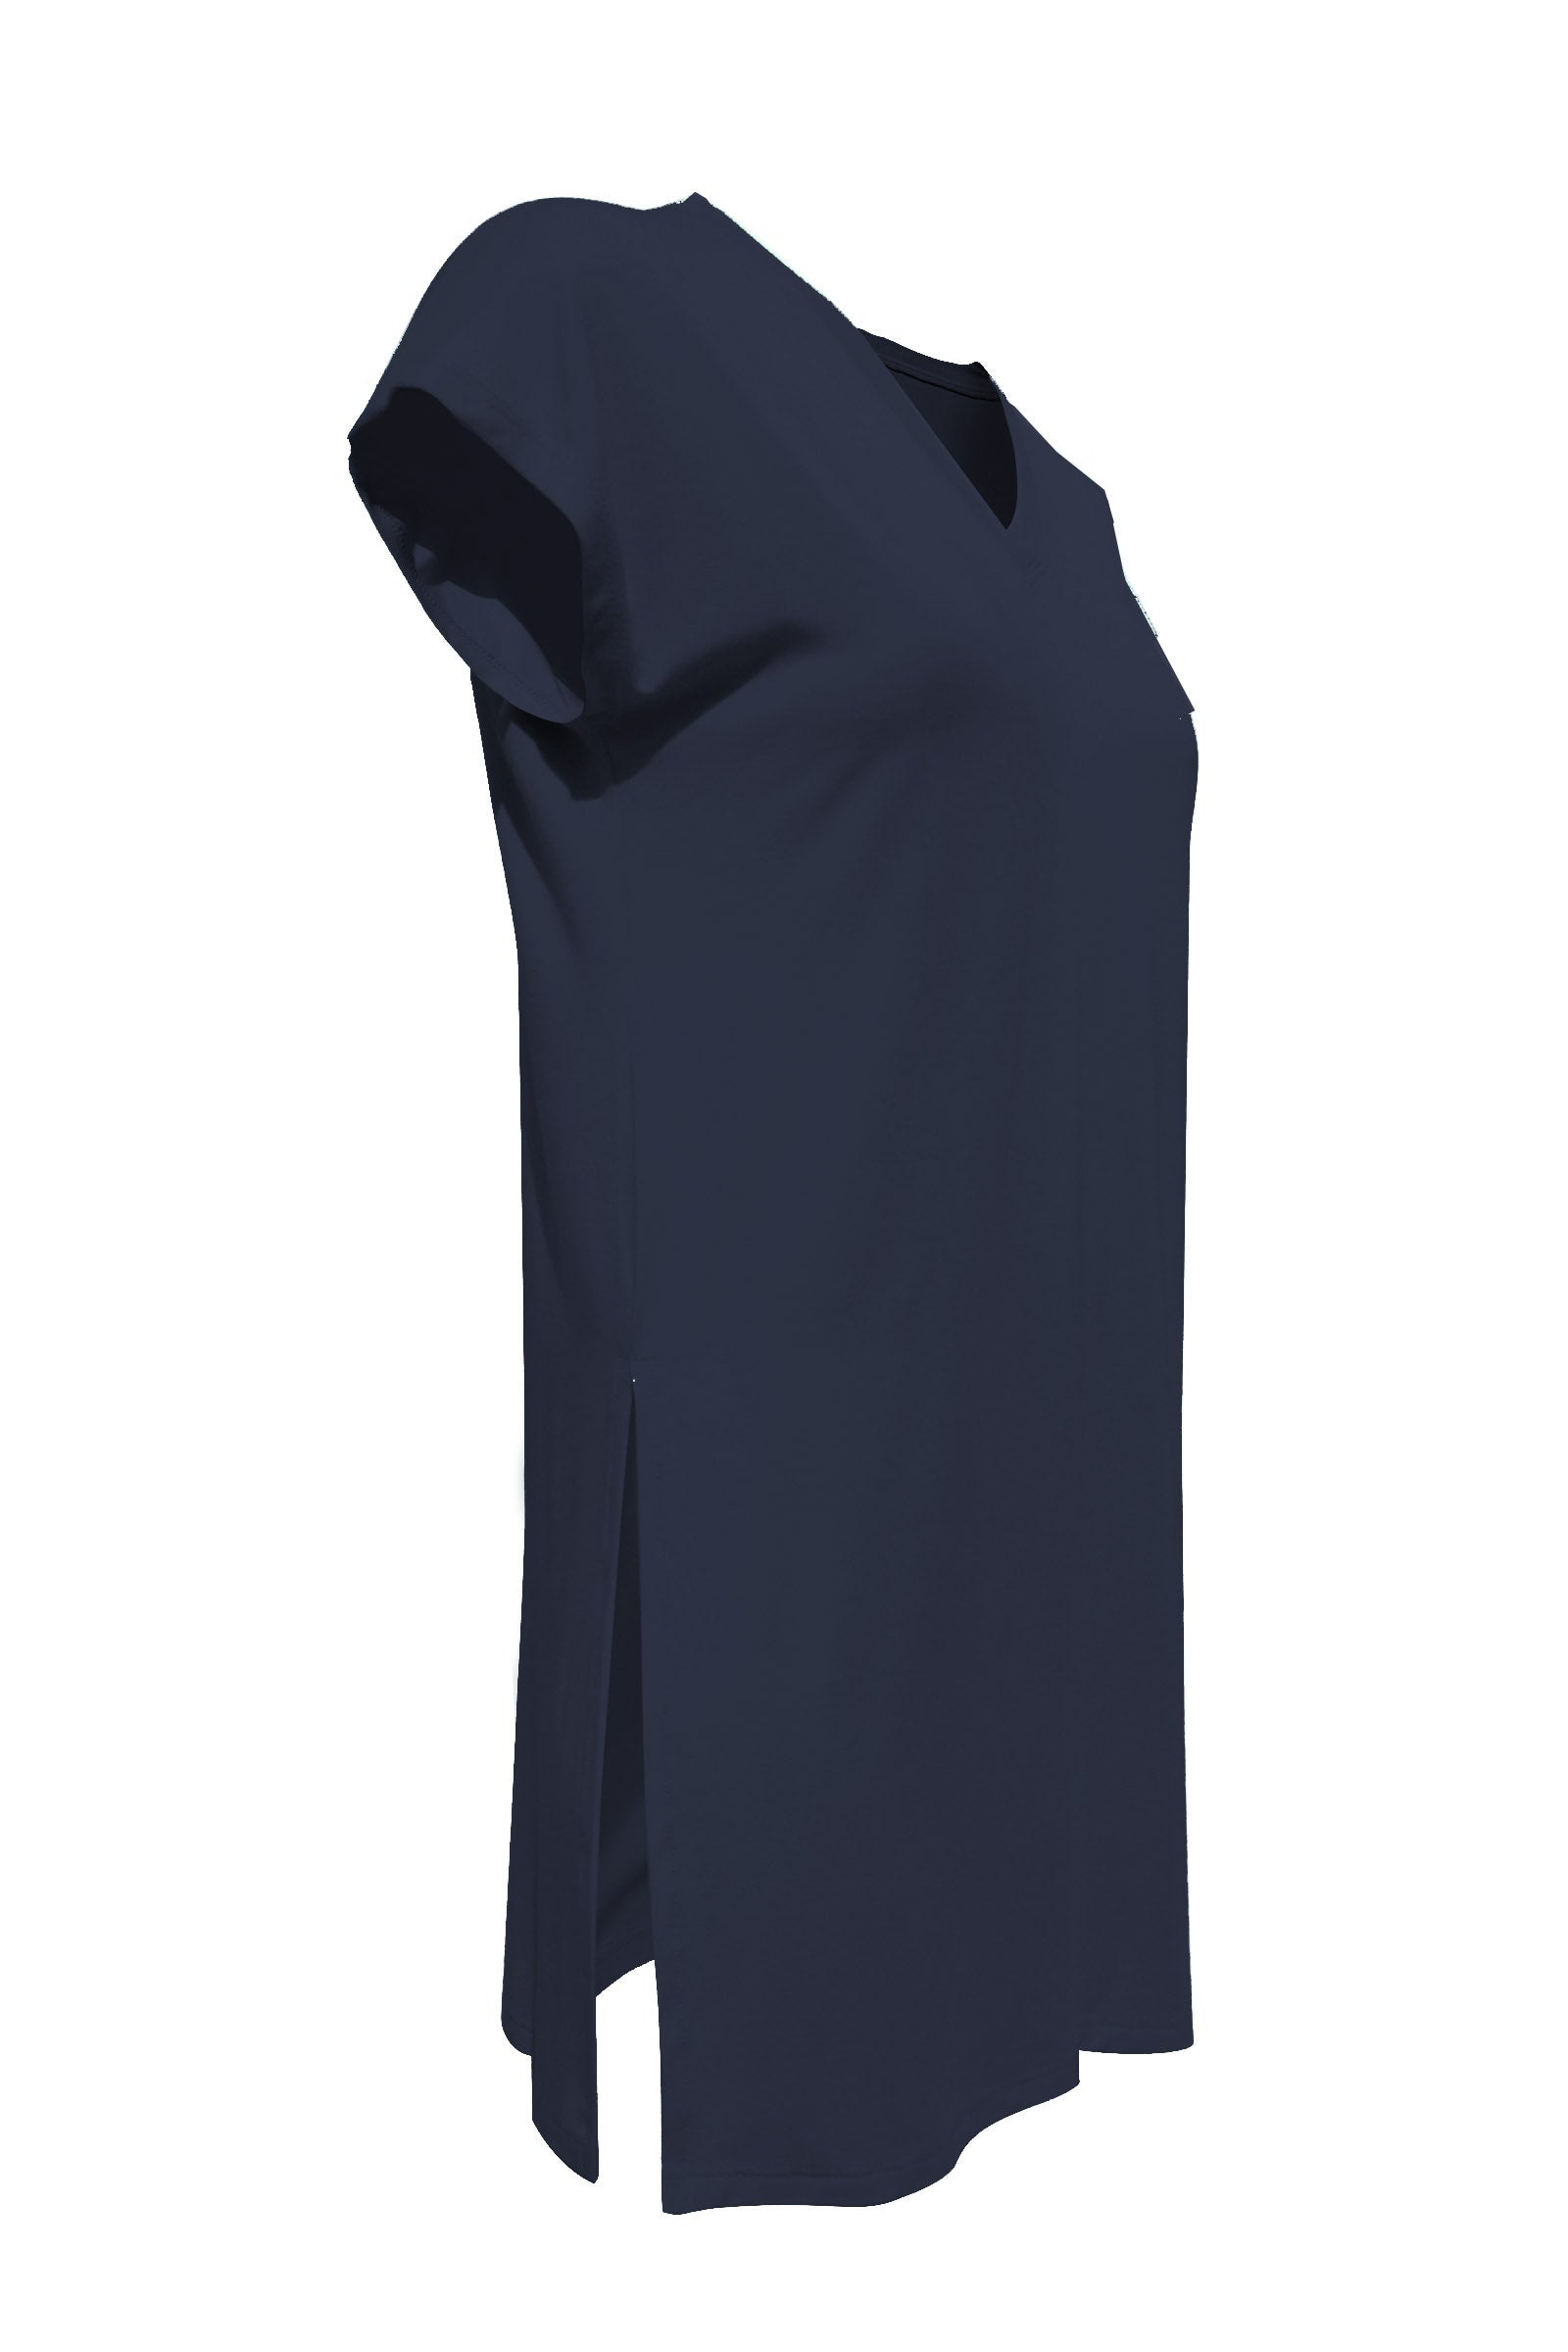 Felicity Tunic by Moovment, Navy, V-neck, cap sleeves, side slits, bamboo, sizes XS to XXL, made in Quebec